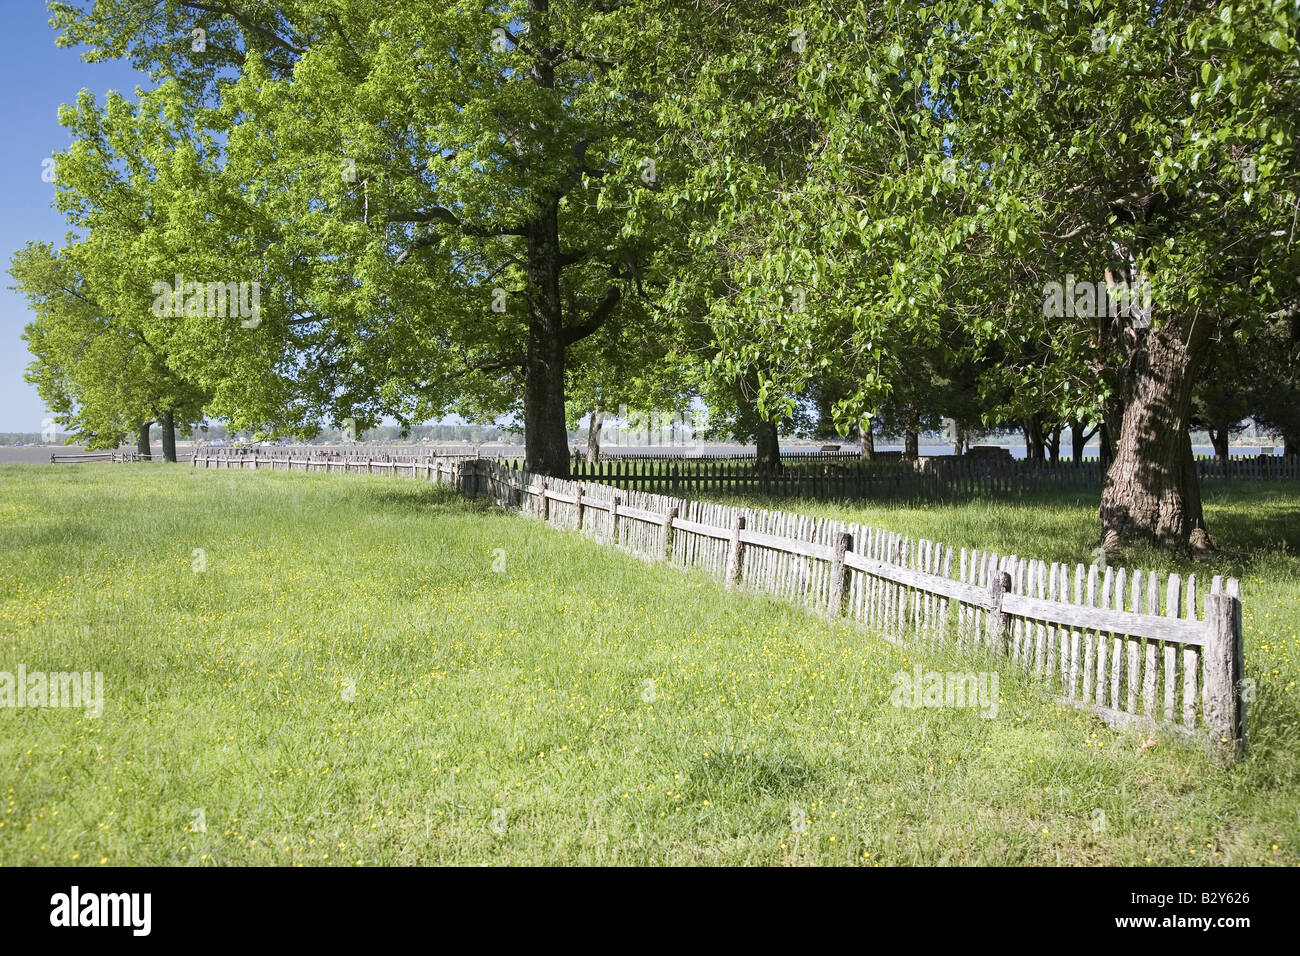 """Early house foundations from the """"New Towne"""" site of Jamestown, Jamestown Island, America's Birthplace, Virginia Stock Photo"""